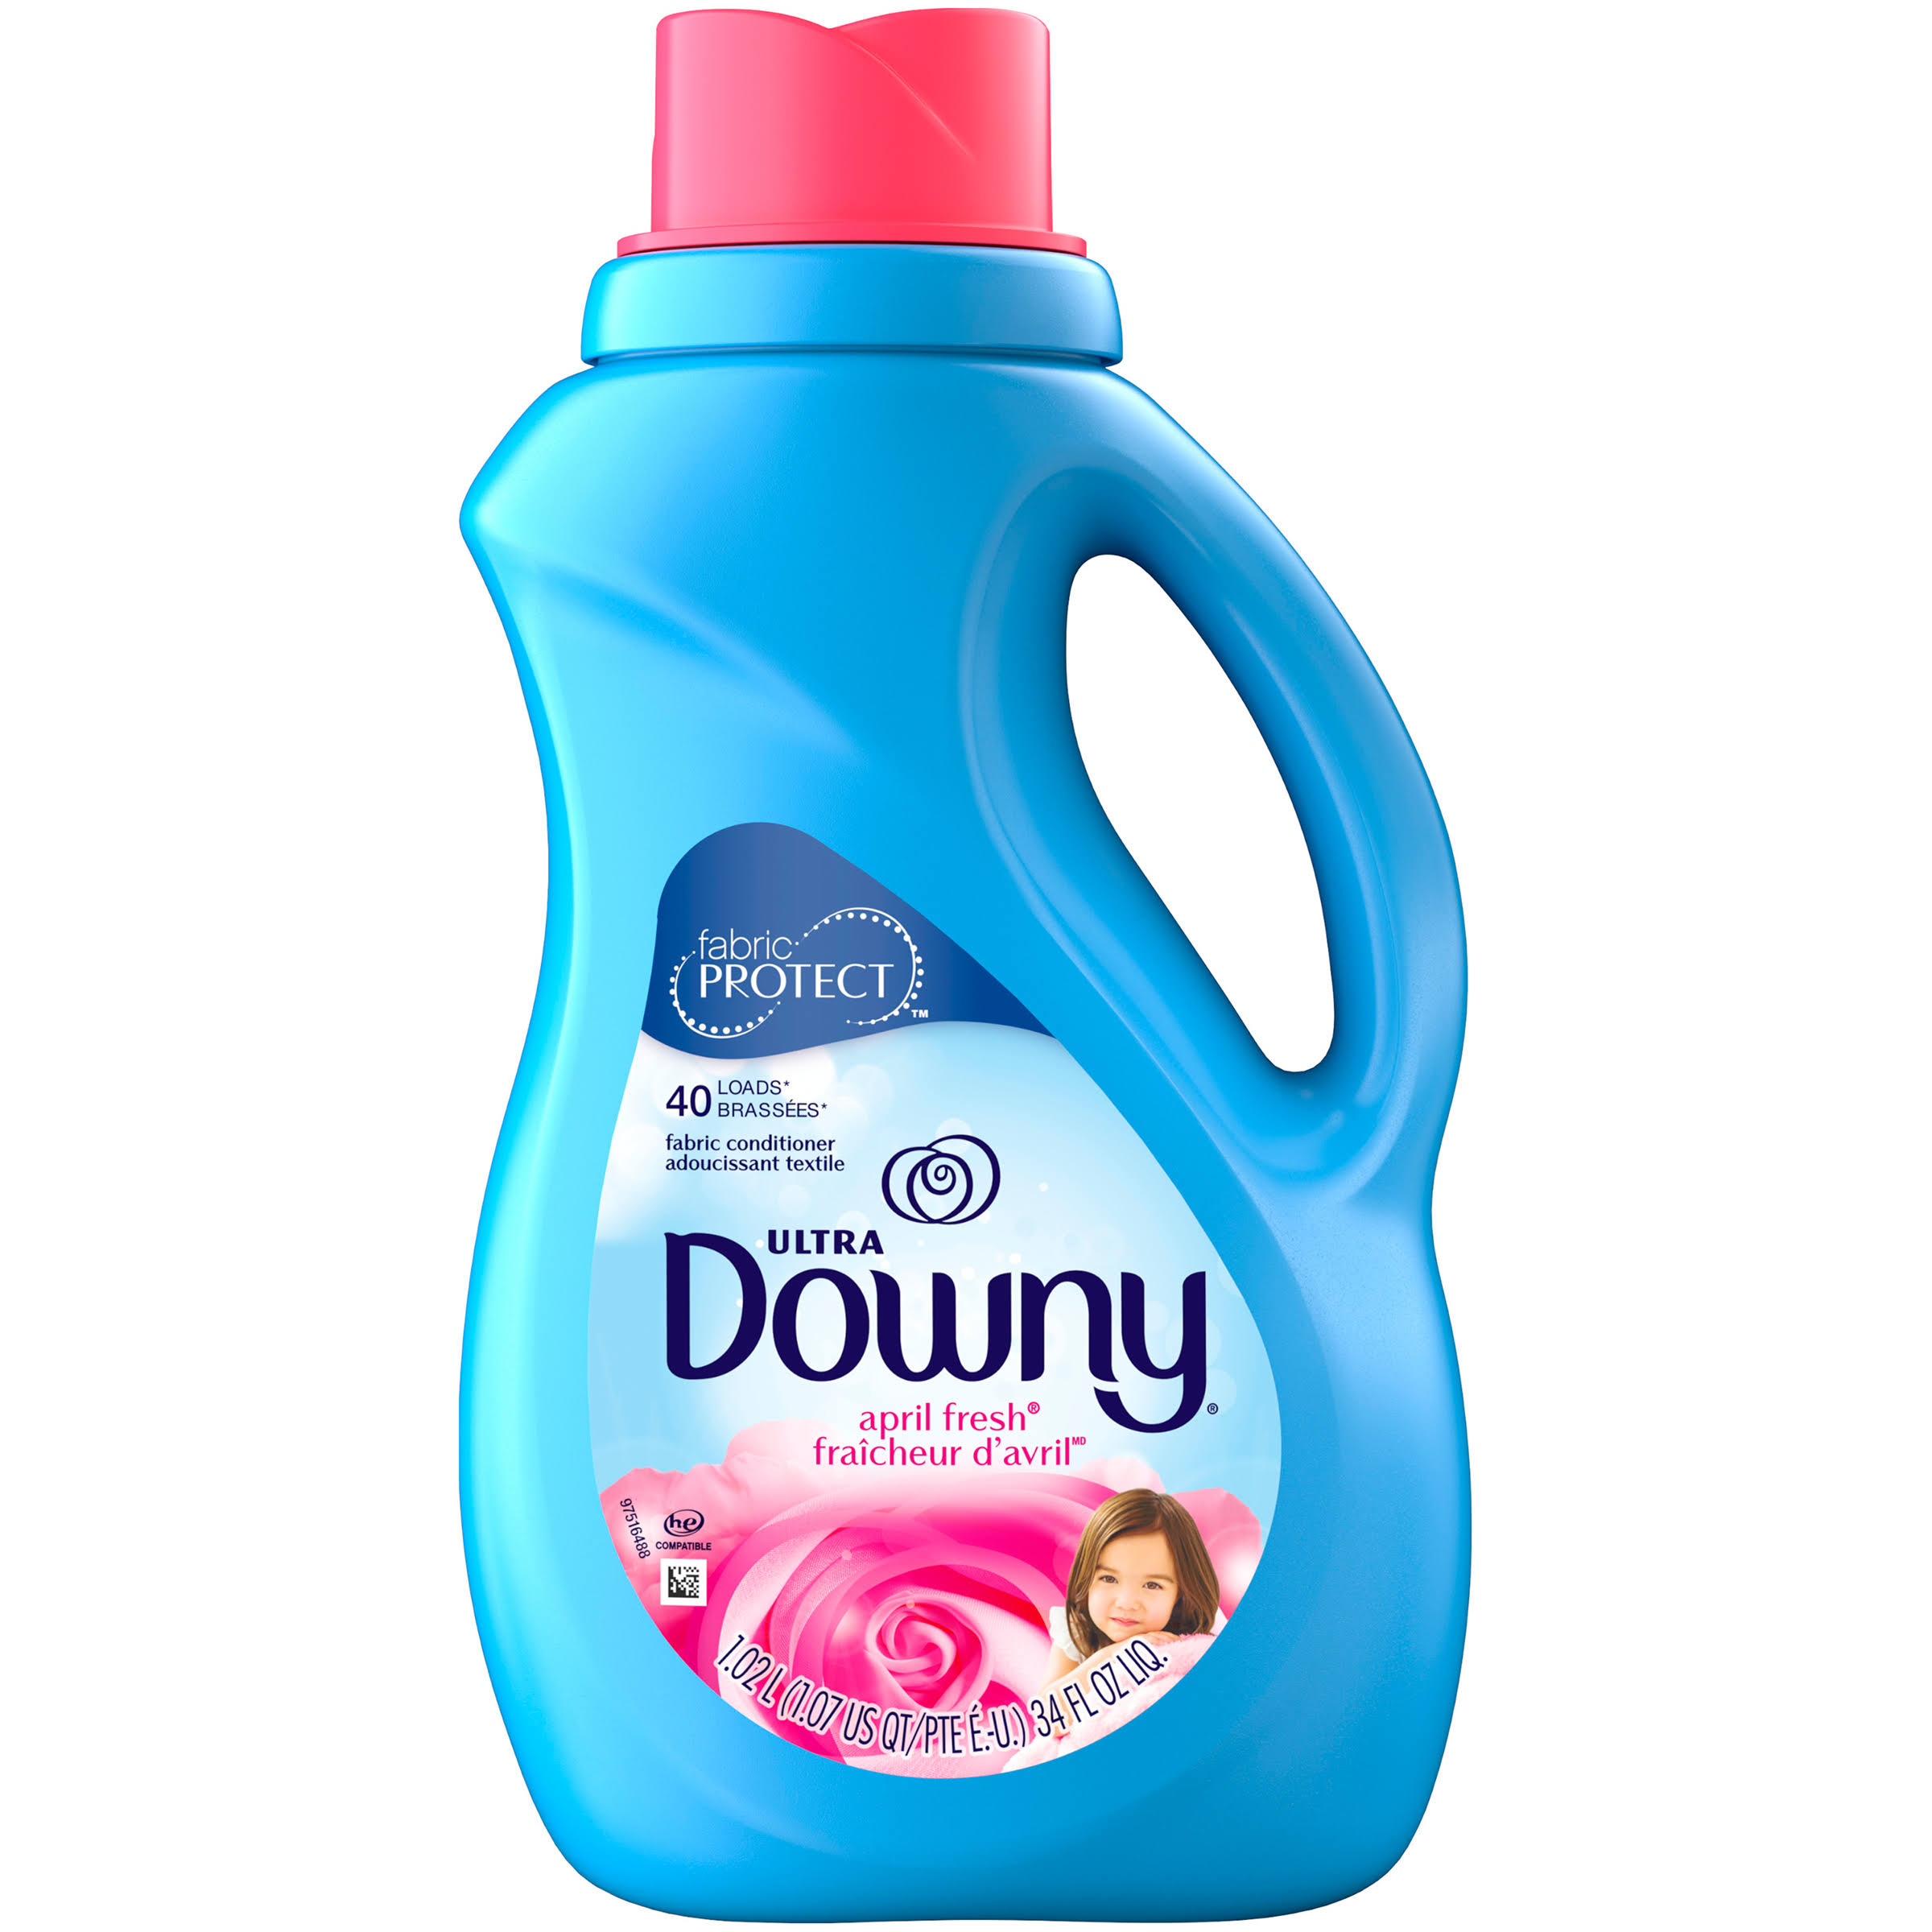 Procter & Gamble Downy Fabric Softener - April Fresh